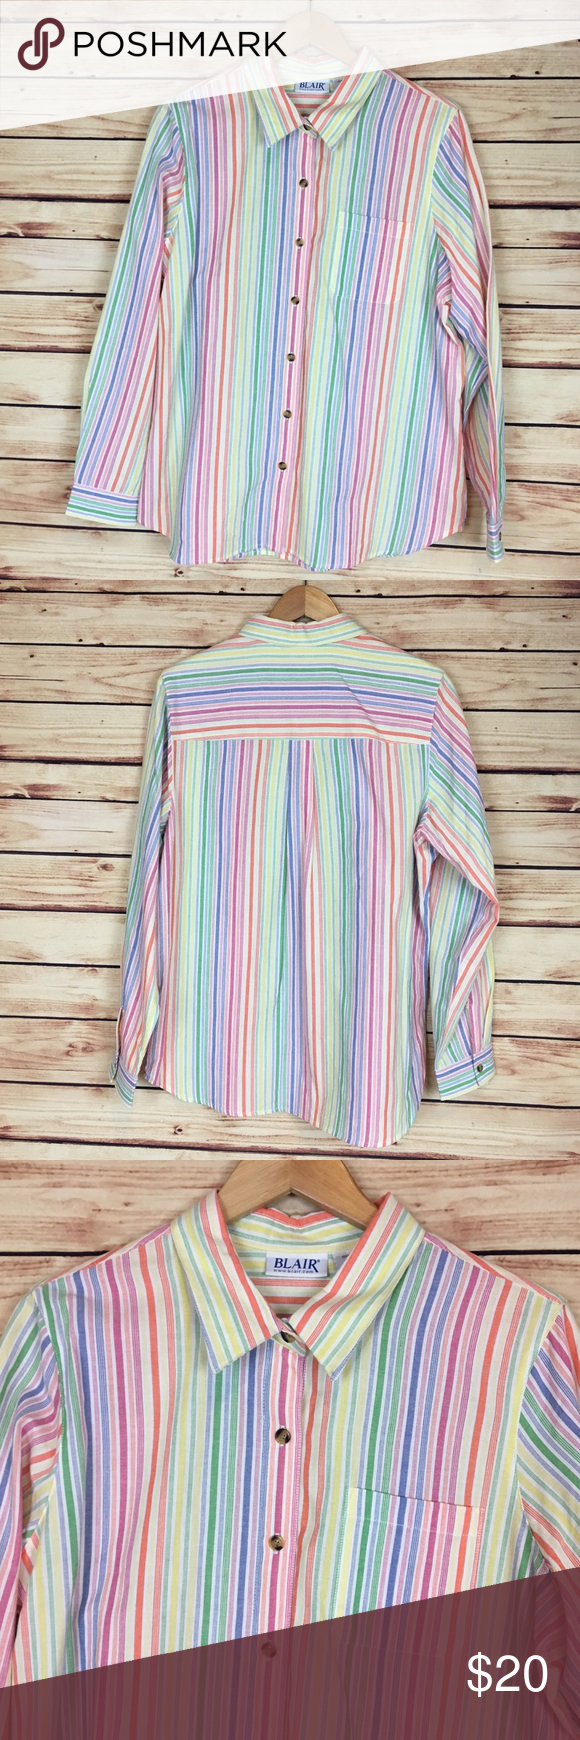 c13ca291a Blair Rainbow Button Down Shirt Vertical Striped L Blair button down blouse.  Rainbow vertical stripes. Long sleeve. Collared. Button front. Breast  pocket.